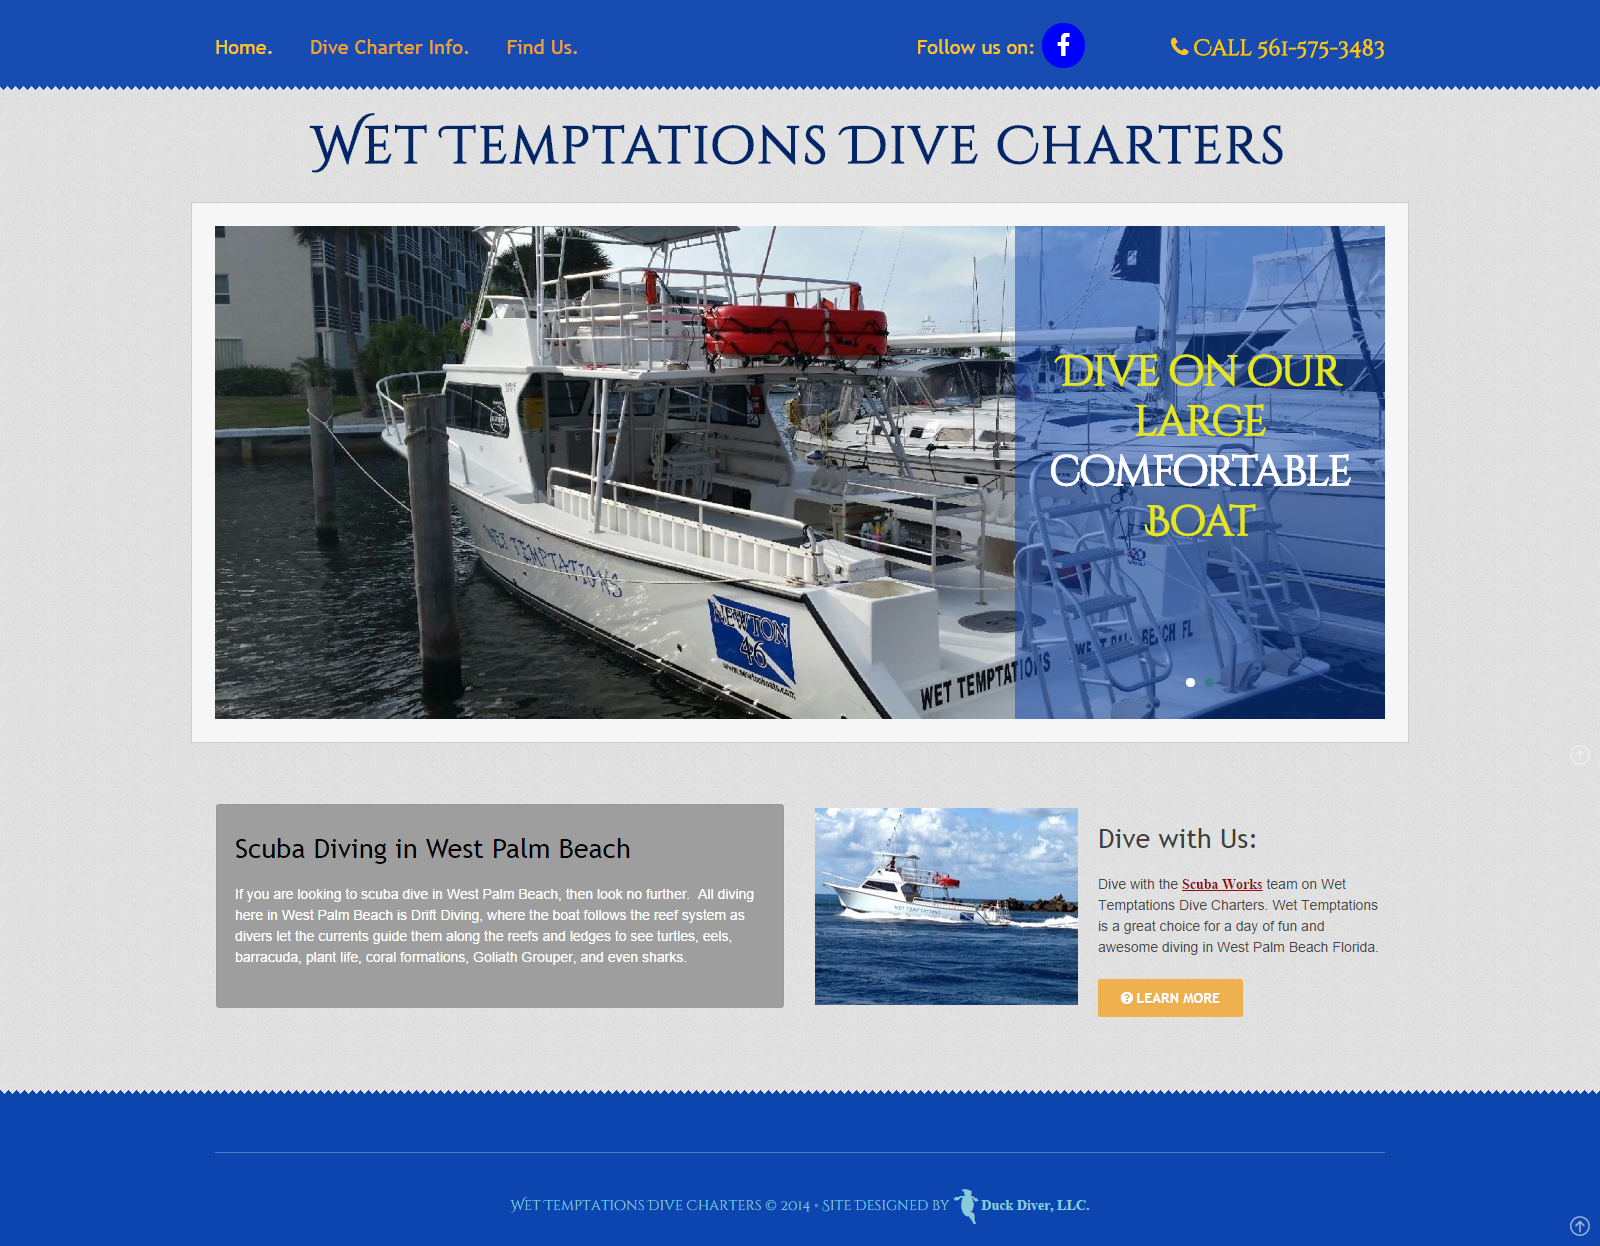 Wet Temptations Dive Charters